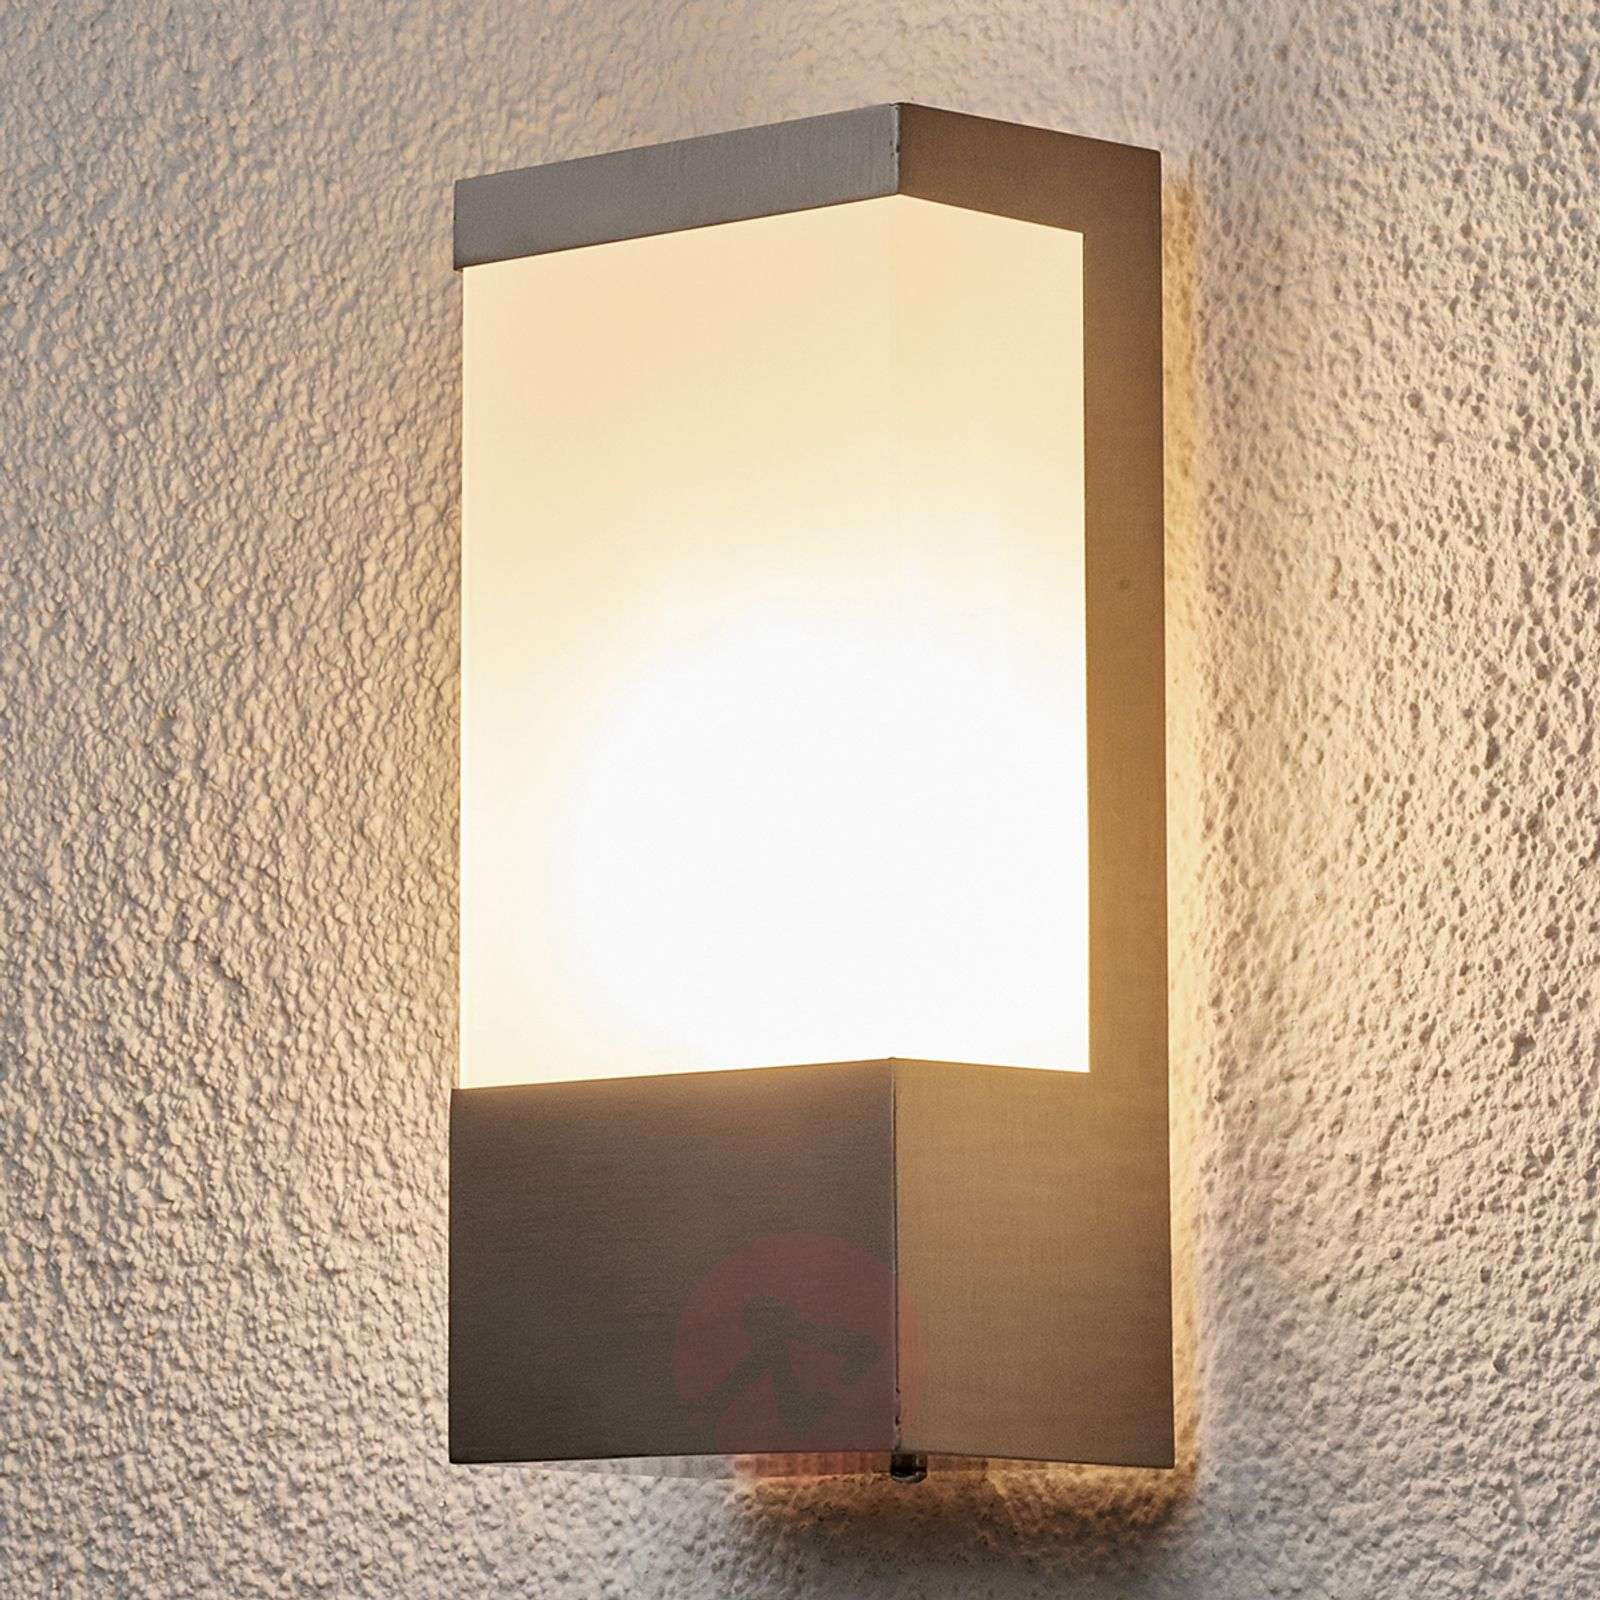 Square stainless steel outdoor wall light Kirana-9972006-01